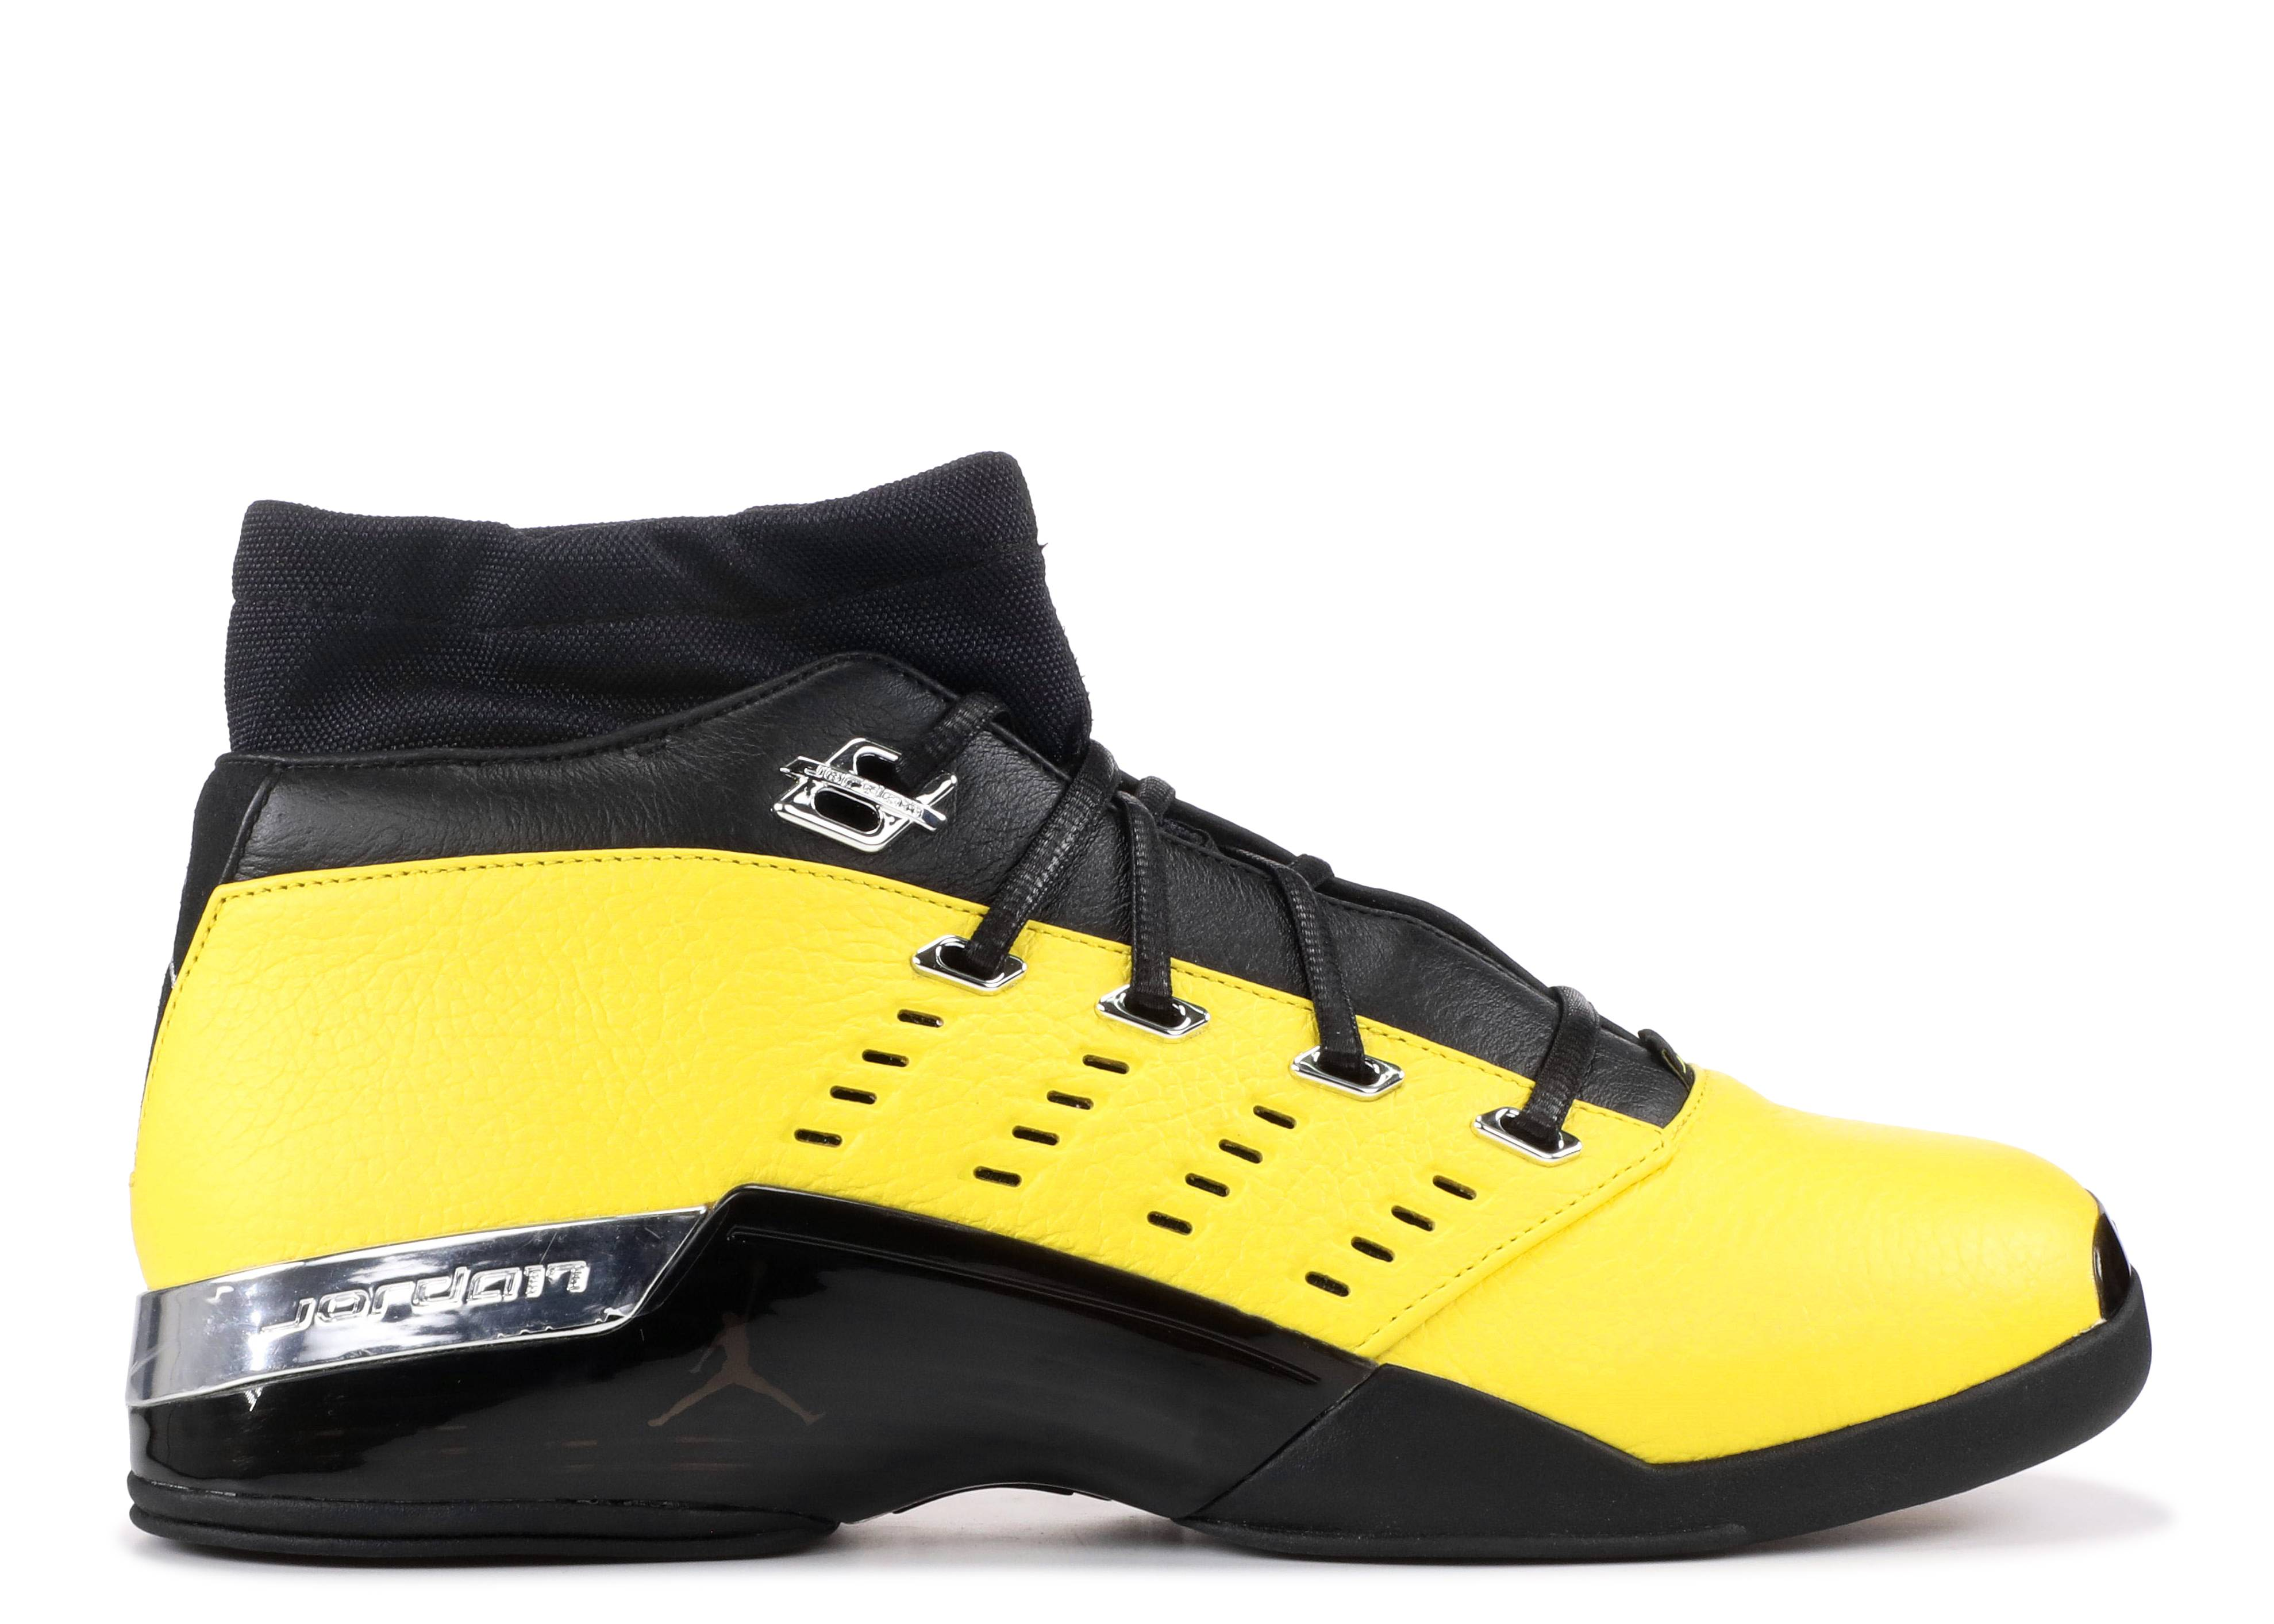 560842971bc9 Jordan 17 Retro Low Solefly Alternate Lightning